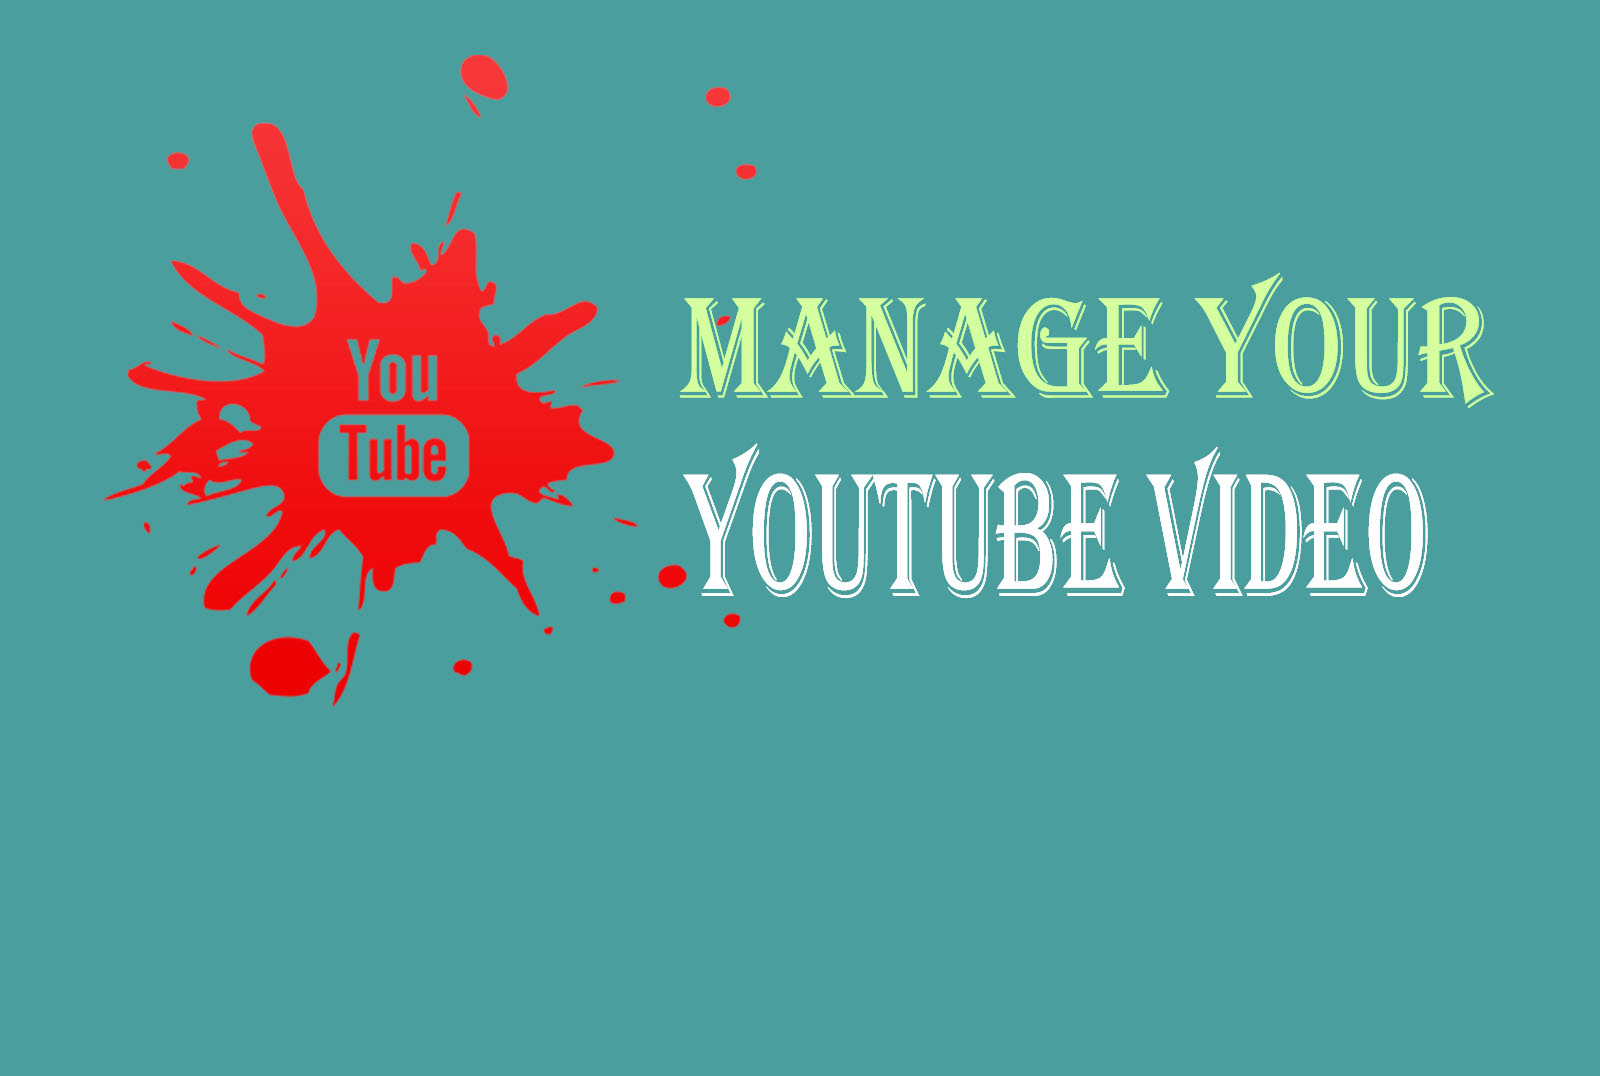 Manage your Youtube video social media marketing